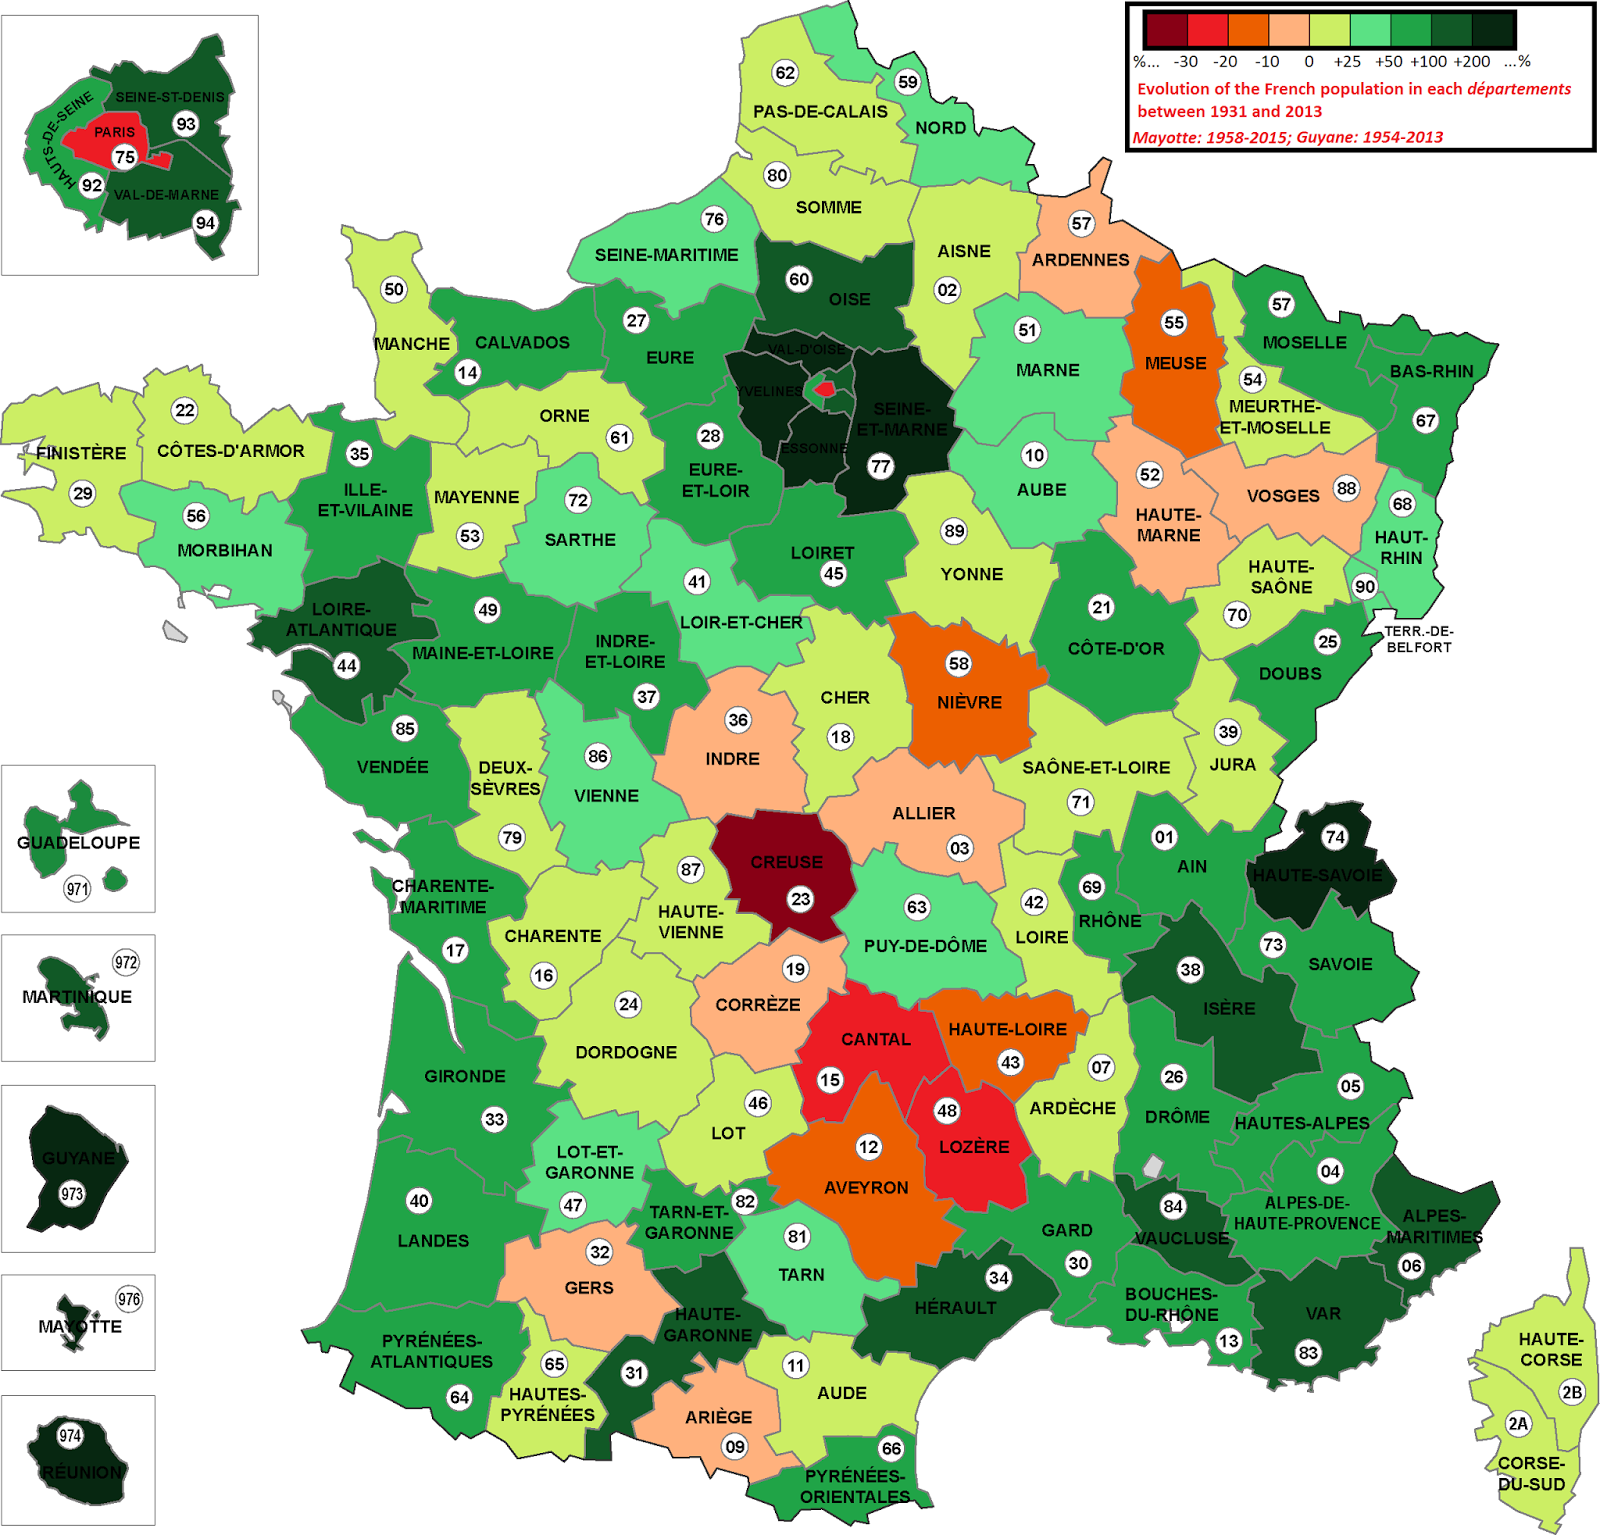 Evolution of the French population in each departement (1931 - 2013)